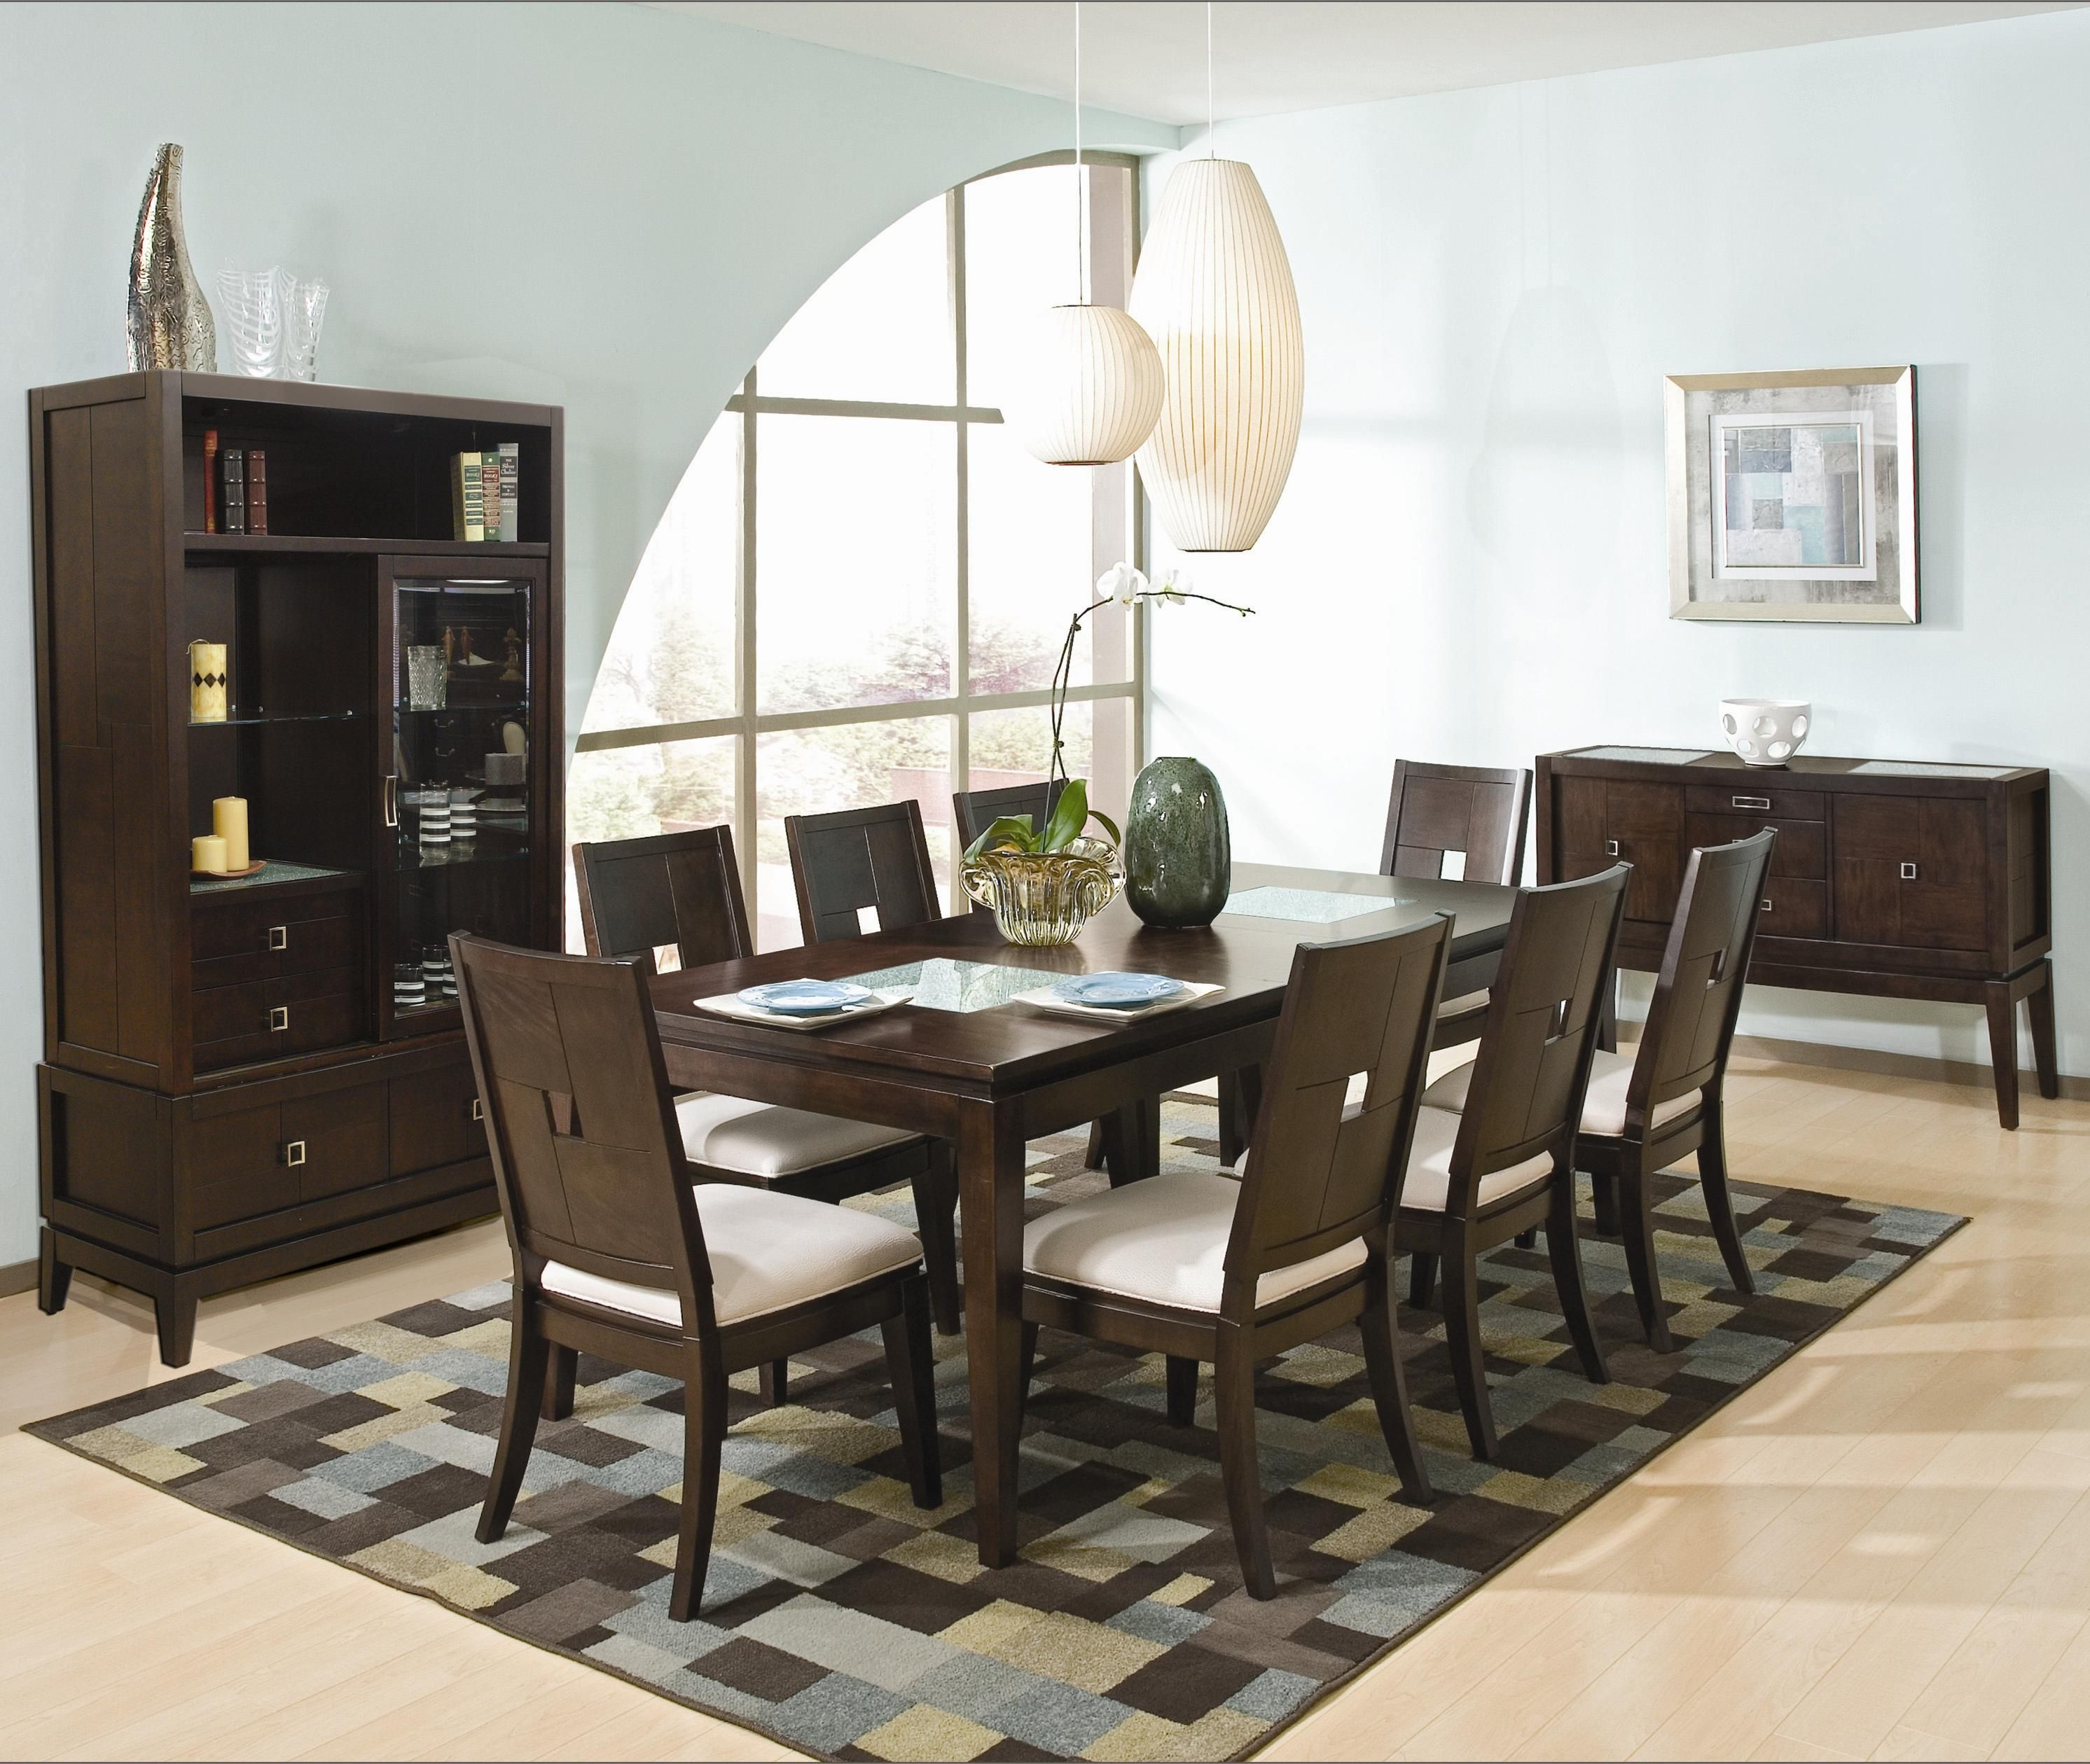 Pinhomeworld Furniture On Dining Rooms  Dining Room Sets Home Goods Decor Najarian Furniture